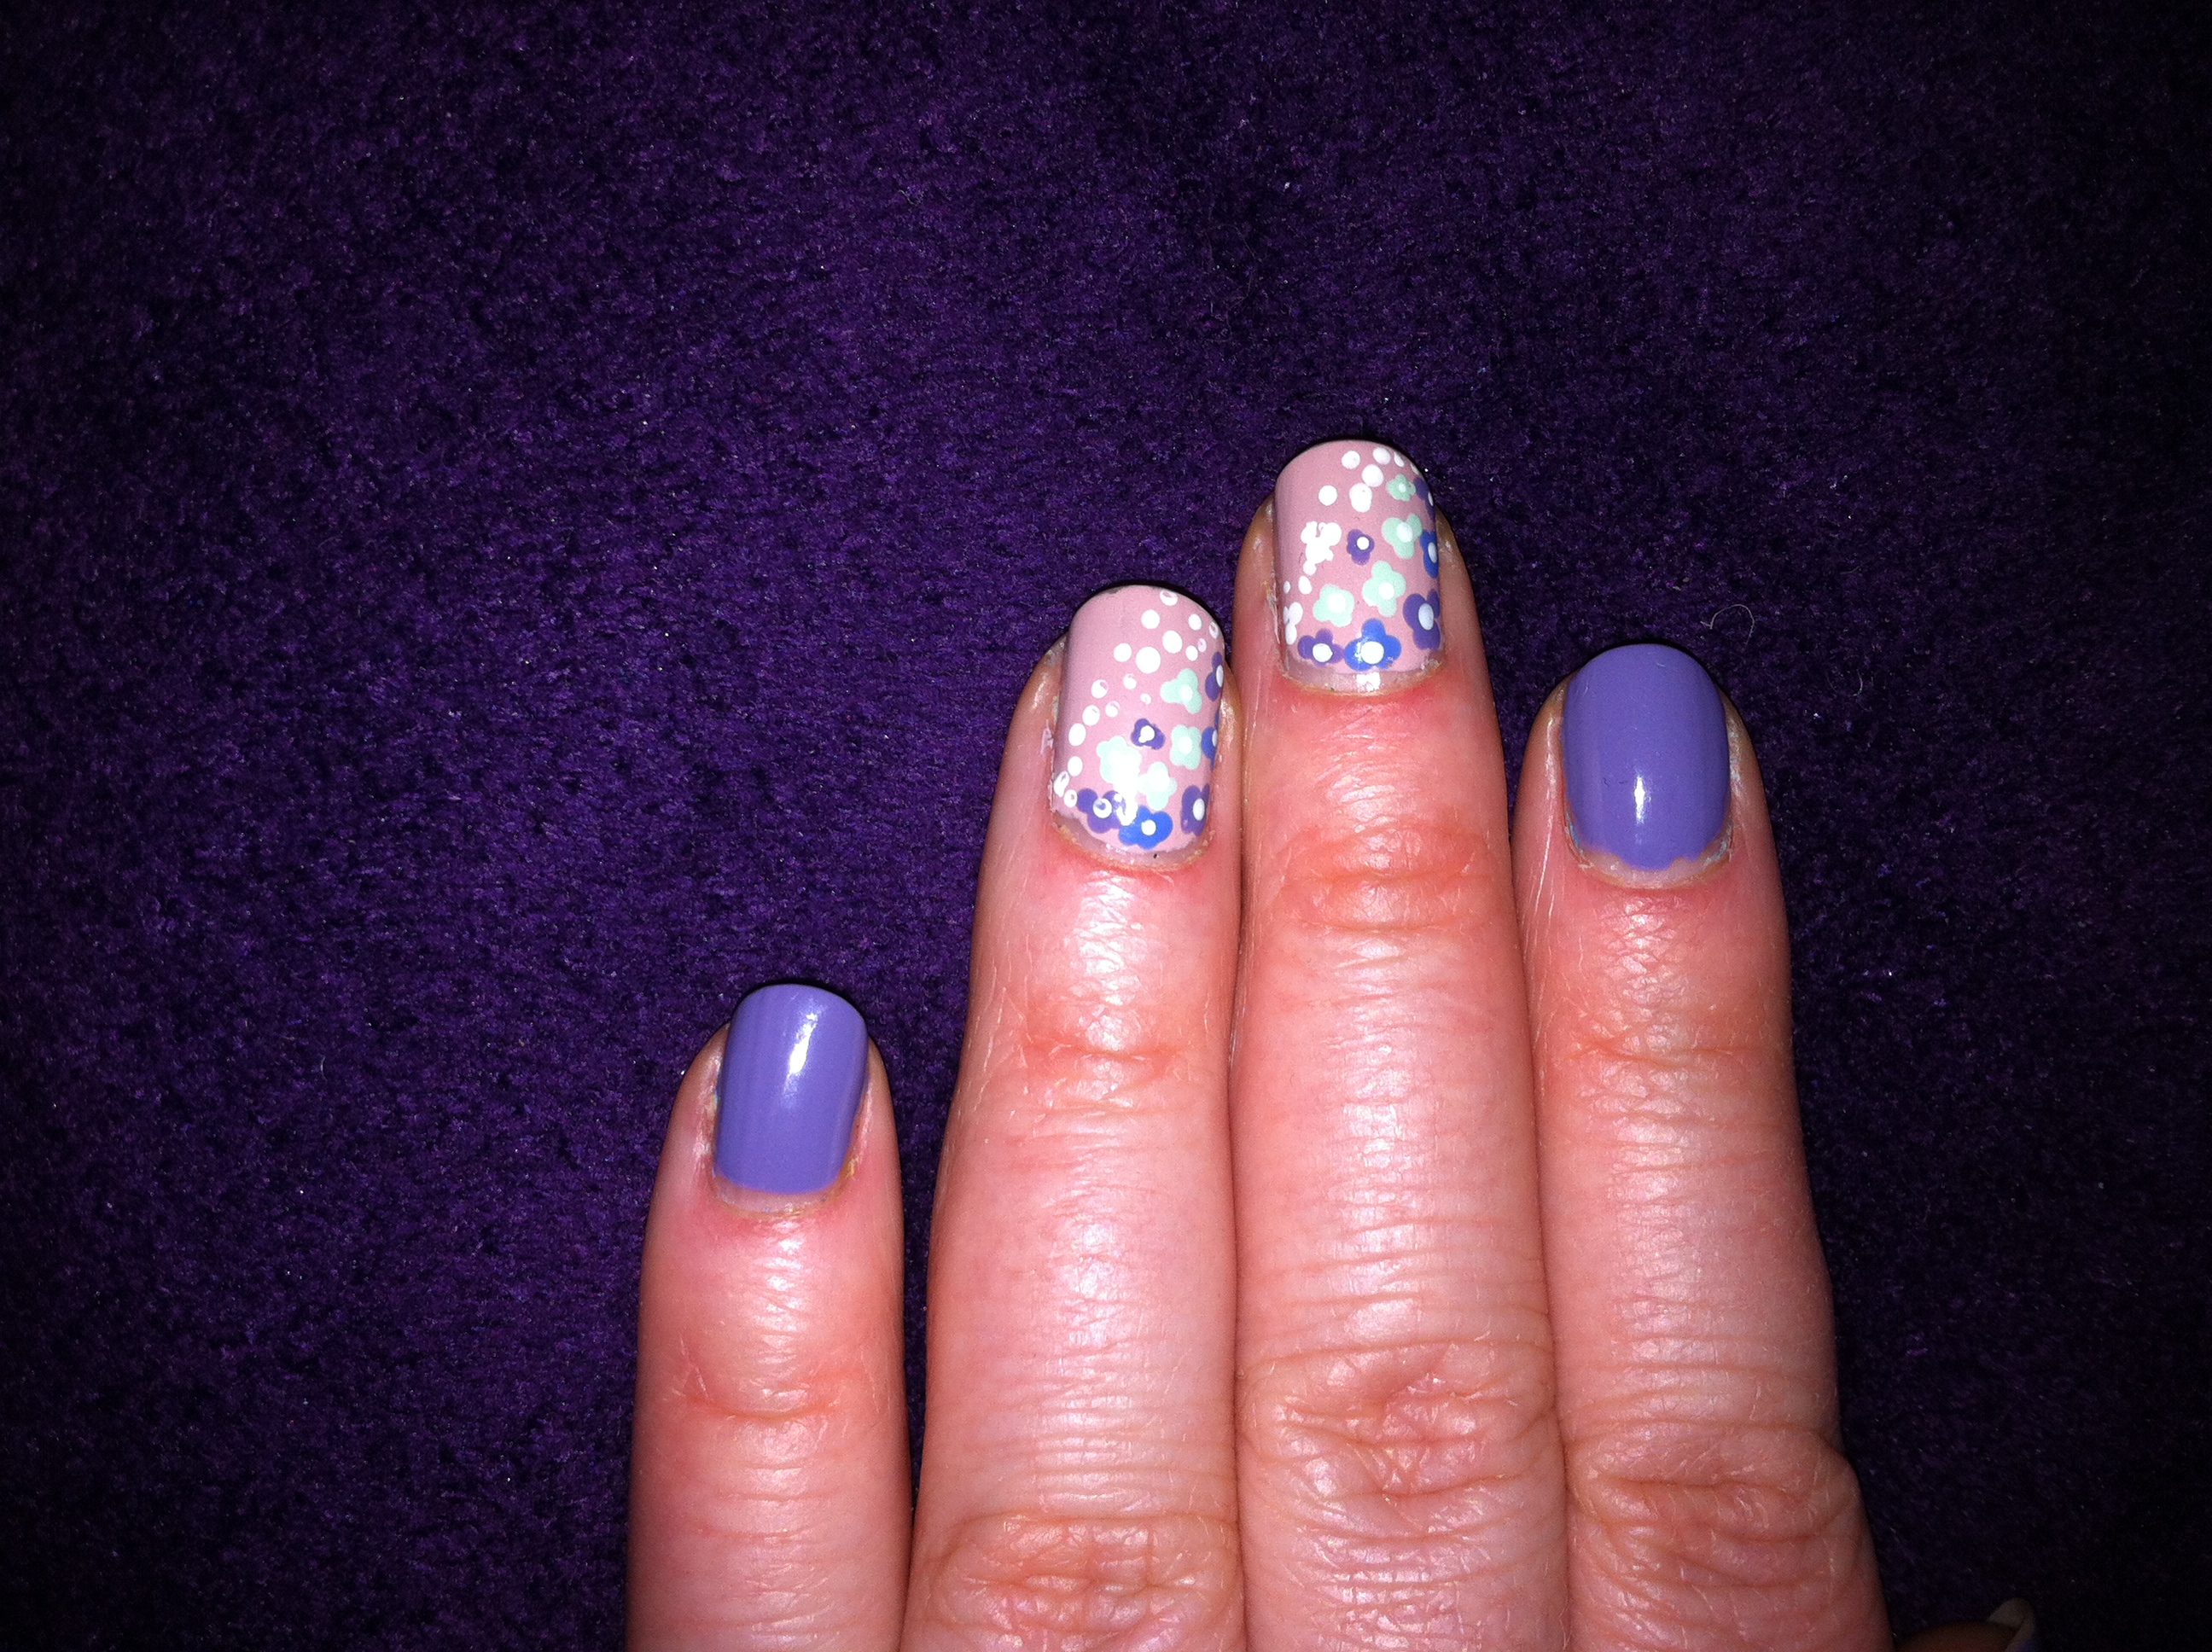 Violet nails with floral pattern on accent nails